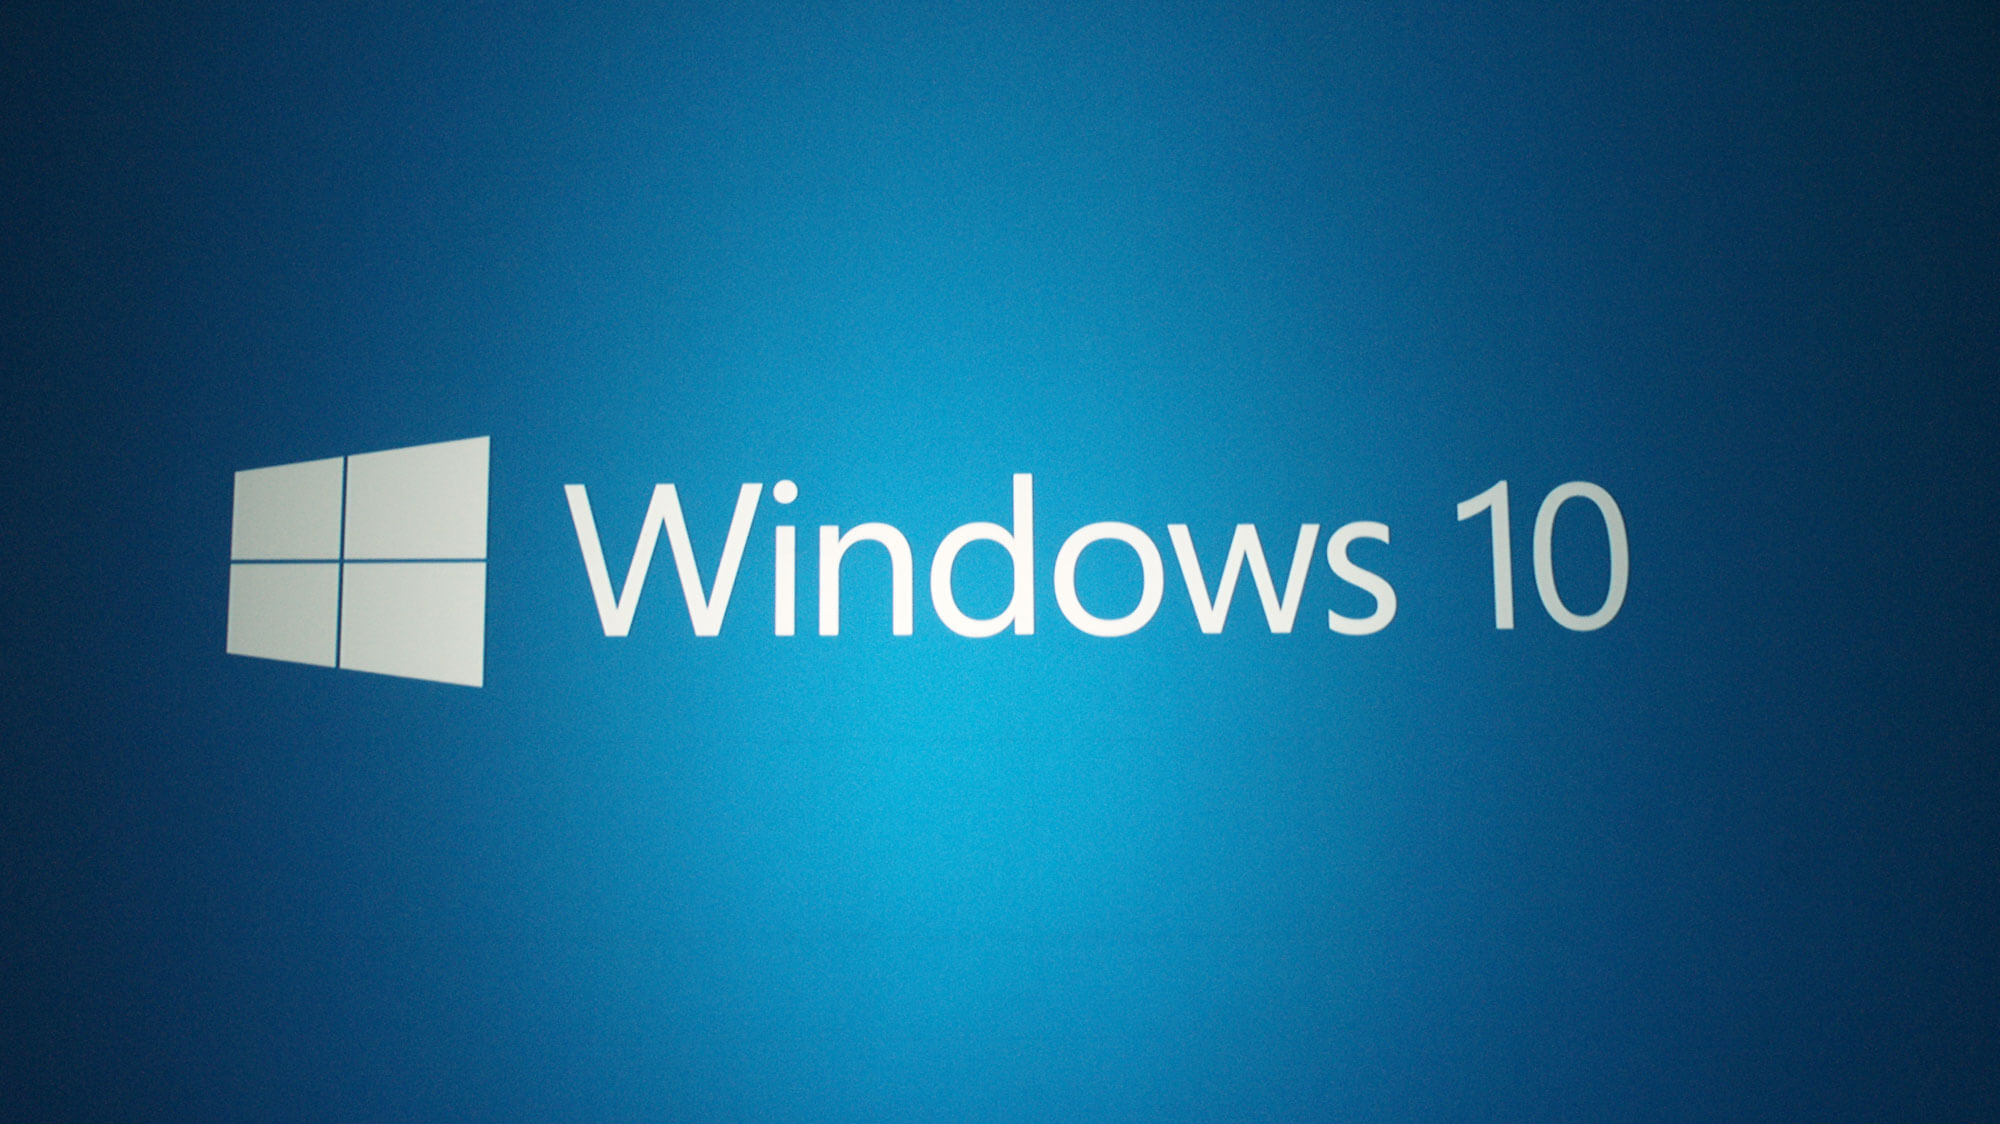 Windows 10 Probleme, Windows 10 Eindruck, Microsoft Windows 10, Microsoft Betriebssysteme, Microsoft 10, Windows 10, Windows10, Bill Gates Windows, Bill Gates Windows 10, Windows 10 Update, Microsoft Windows 10 Update, Windows 10 Upgrade, Windows Betriebssysteme, Windows 10 Kostenlos, Windows 10 Gratis, Windows 10 Crack, Windows 10 Tipps und Tricks, Windows 10 Test, Windows 10 Erfahrungsberichte, Windows 10 Testberichte, Windows 10 Erfahrungen, Windows 10, Windows 7 auf Windows 10, Windows 8 auf Windows 10, Windows 10 Cortana, Windows 10 Tablet, Windows 10 Zubehör, Windows 10 Installieren, Windows 10 Installation, Windows 10 technische Daten, Windows 10 Voraussetzungen, Windows 7, Windows 8, Windows 7 Update, Windows 7 Upgrade, Windows 8 Update, Windows 8 Upgrade, Vorteile Windows 10, Nachteile Windows 10, Windows 01, Windows 10 Technical Preview, Windows 10 Demo, Windows 10 Service Pack, Windows 10 Treiber, Windows 10 Programme, Windows 10 Startmenü, Windows 10 Desktop, Windows Hintergrund, Windows 10 Hintergrundbilder, Windows 10 Overlay, Windows 10 Direct X 12, Direct X12, Direkt X12, DirectX12, Windows 10 Arbeitsspeicher, Windows 10 Positiv, Windows 10 Negativ, Windows 10 Nvidia, Windows 10 Home Version, Windows 10 Professionell, Neue Funktionen Windows 10, Windows 10 Funktionen, Windows 10 Release, Windows 10 Deutsch, Windows 10 Erscheinungsdatum, Windows 10 Preis, Windows 10 Download, Windows 10 Systemanforderungen, Windows 10 News, Windows 10 Infos, Windows 10 Informationen, Windows 10 Preview Version, Windows 10 Version, Windows 10 Neuigkeiten, Windows 10 Tempo-Test, Windows 10 Speed Test, Windows 10 64-bit, Windows 10 32-Bit, Windows 10 Hilfe, Microsoft Edge, Windows 10 Geräte, Windows 10 Wiki, Windows 10 Wikipedia, Windows 10 Lizenz, Windows 10 Lizens, Windows 10 Threshold, Windows 10 Datenschutz, Windows 10 Insider, Windows 10 Program, Windows 10 Lizenzierung, Wichtigste zu Windows 10, Wichtig Windows 10, Windows 10 Einstellungen, Windows 10 Settings, Windows 10 Rezension, Windows 10 Bericht, Windows